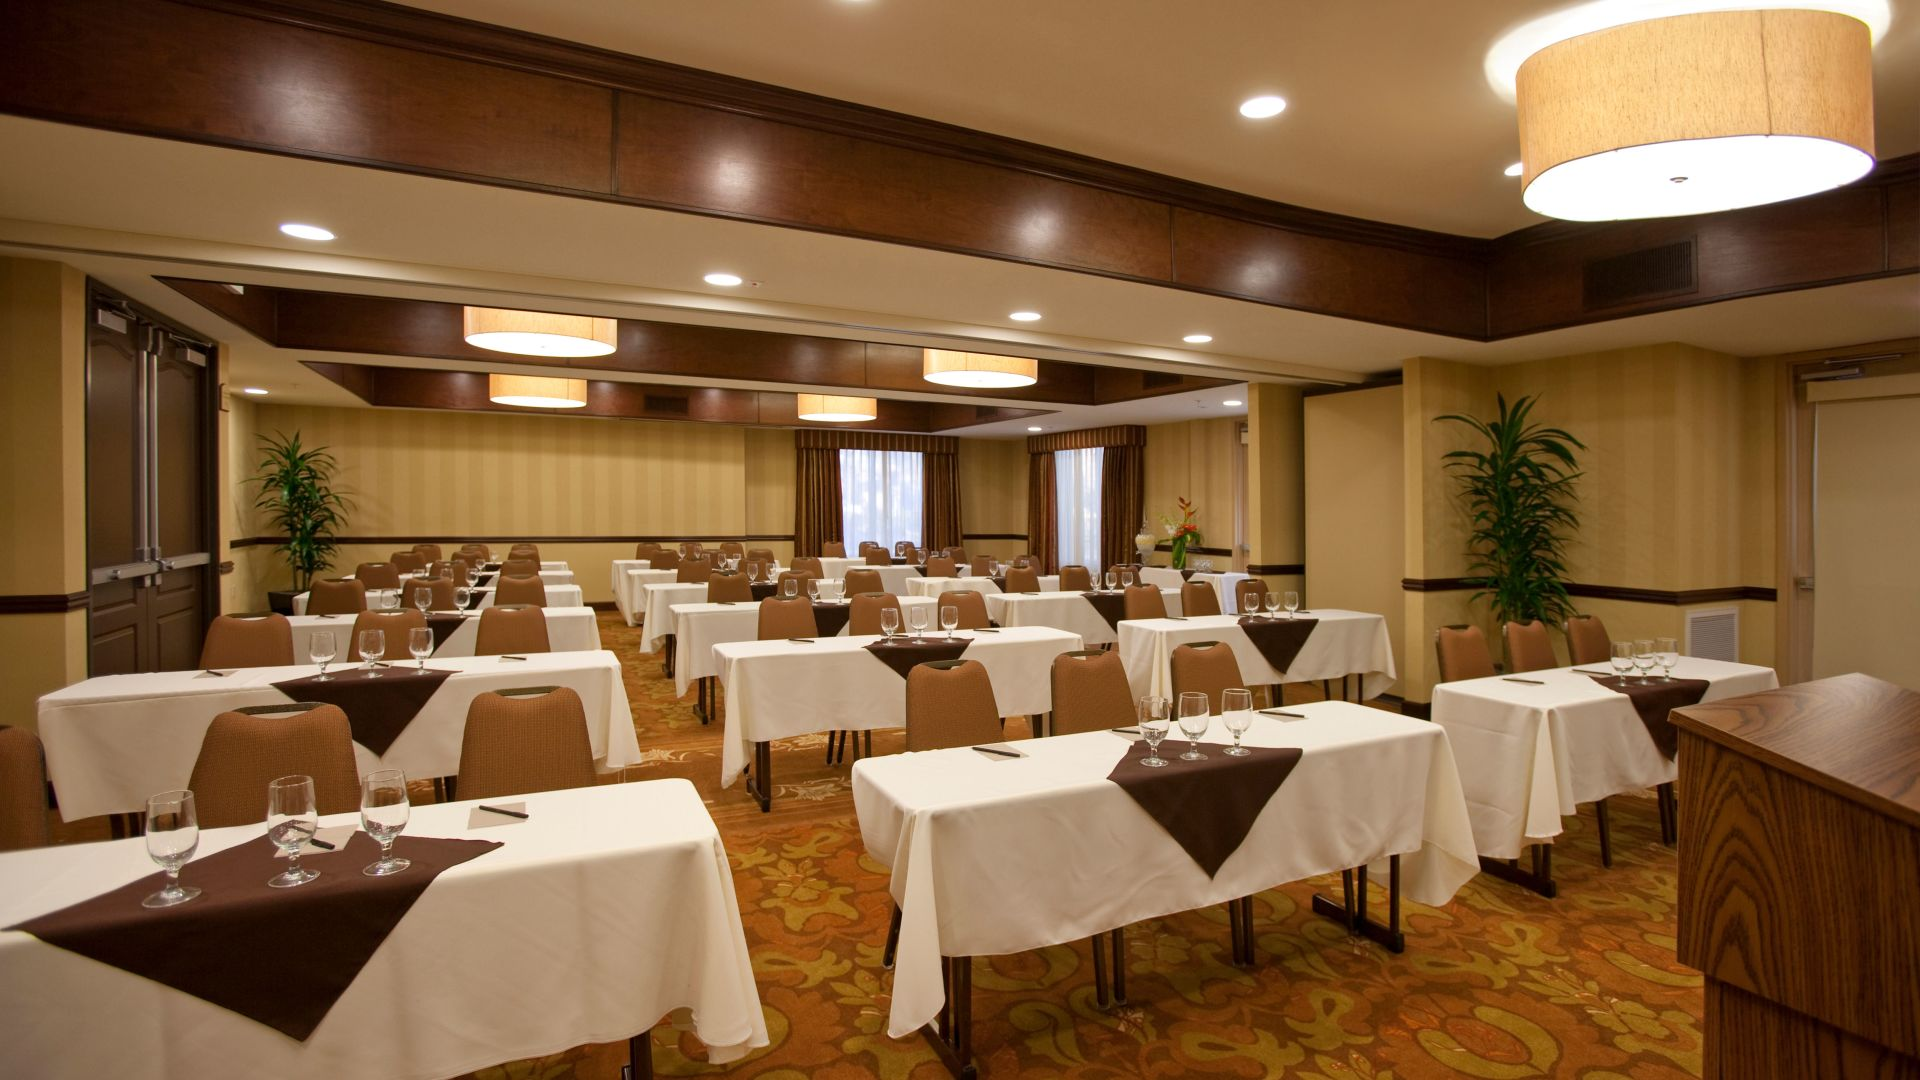 Ayres Hotel & Spa Moreno Valley Meeting Room Classroom